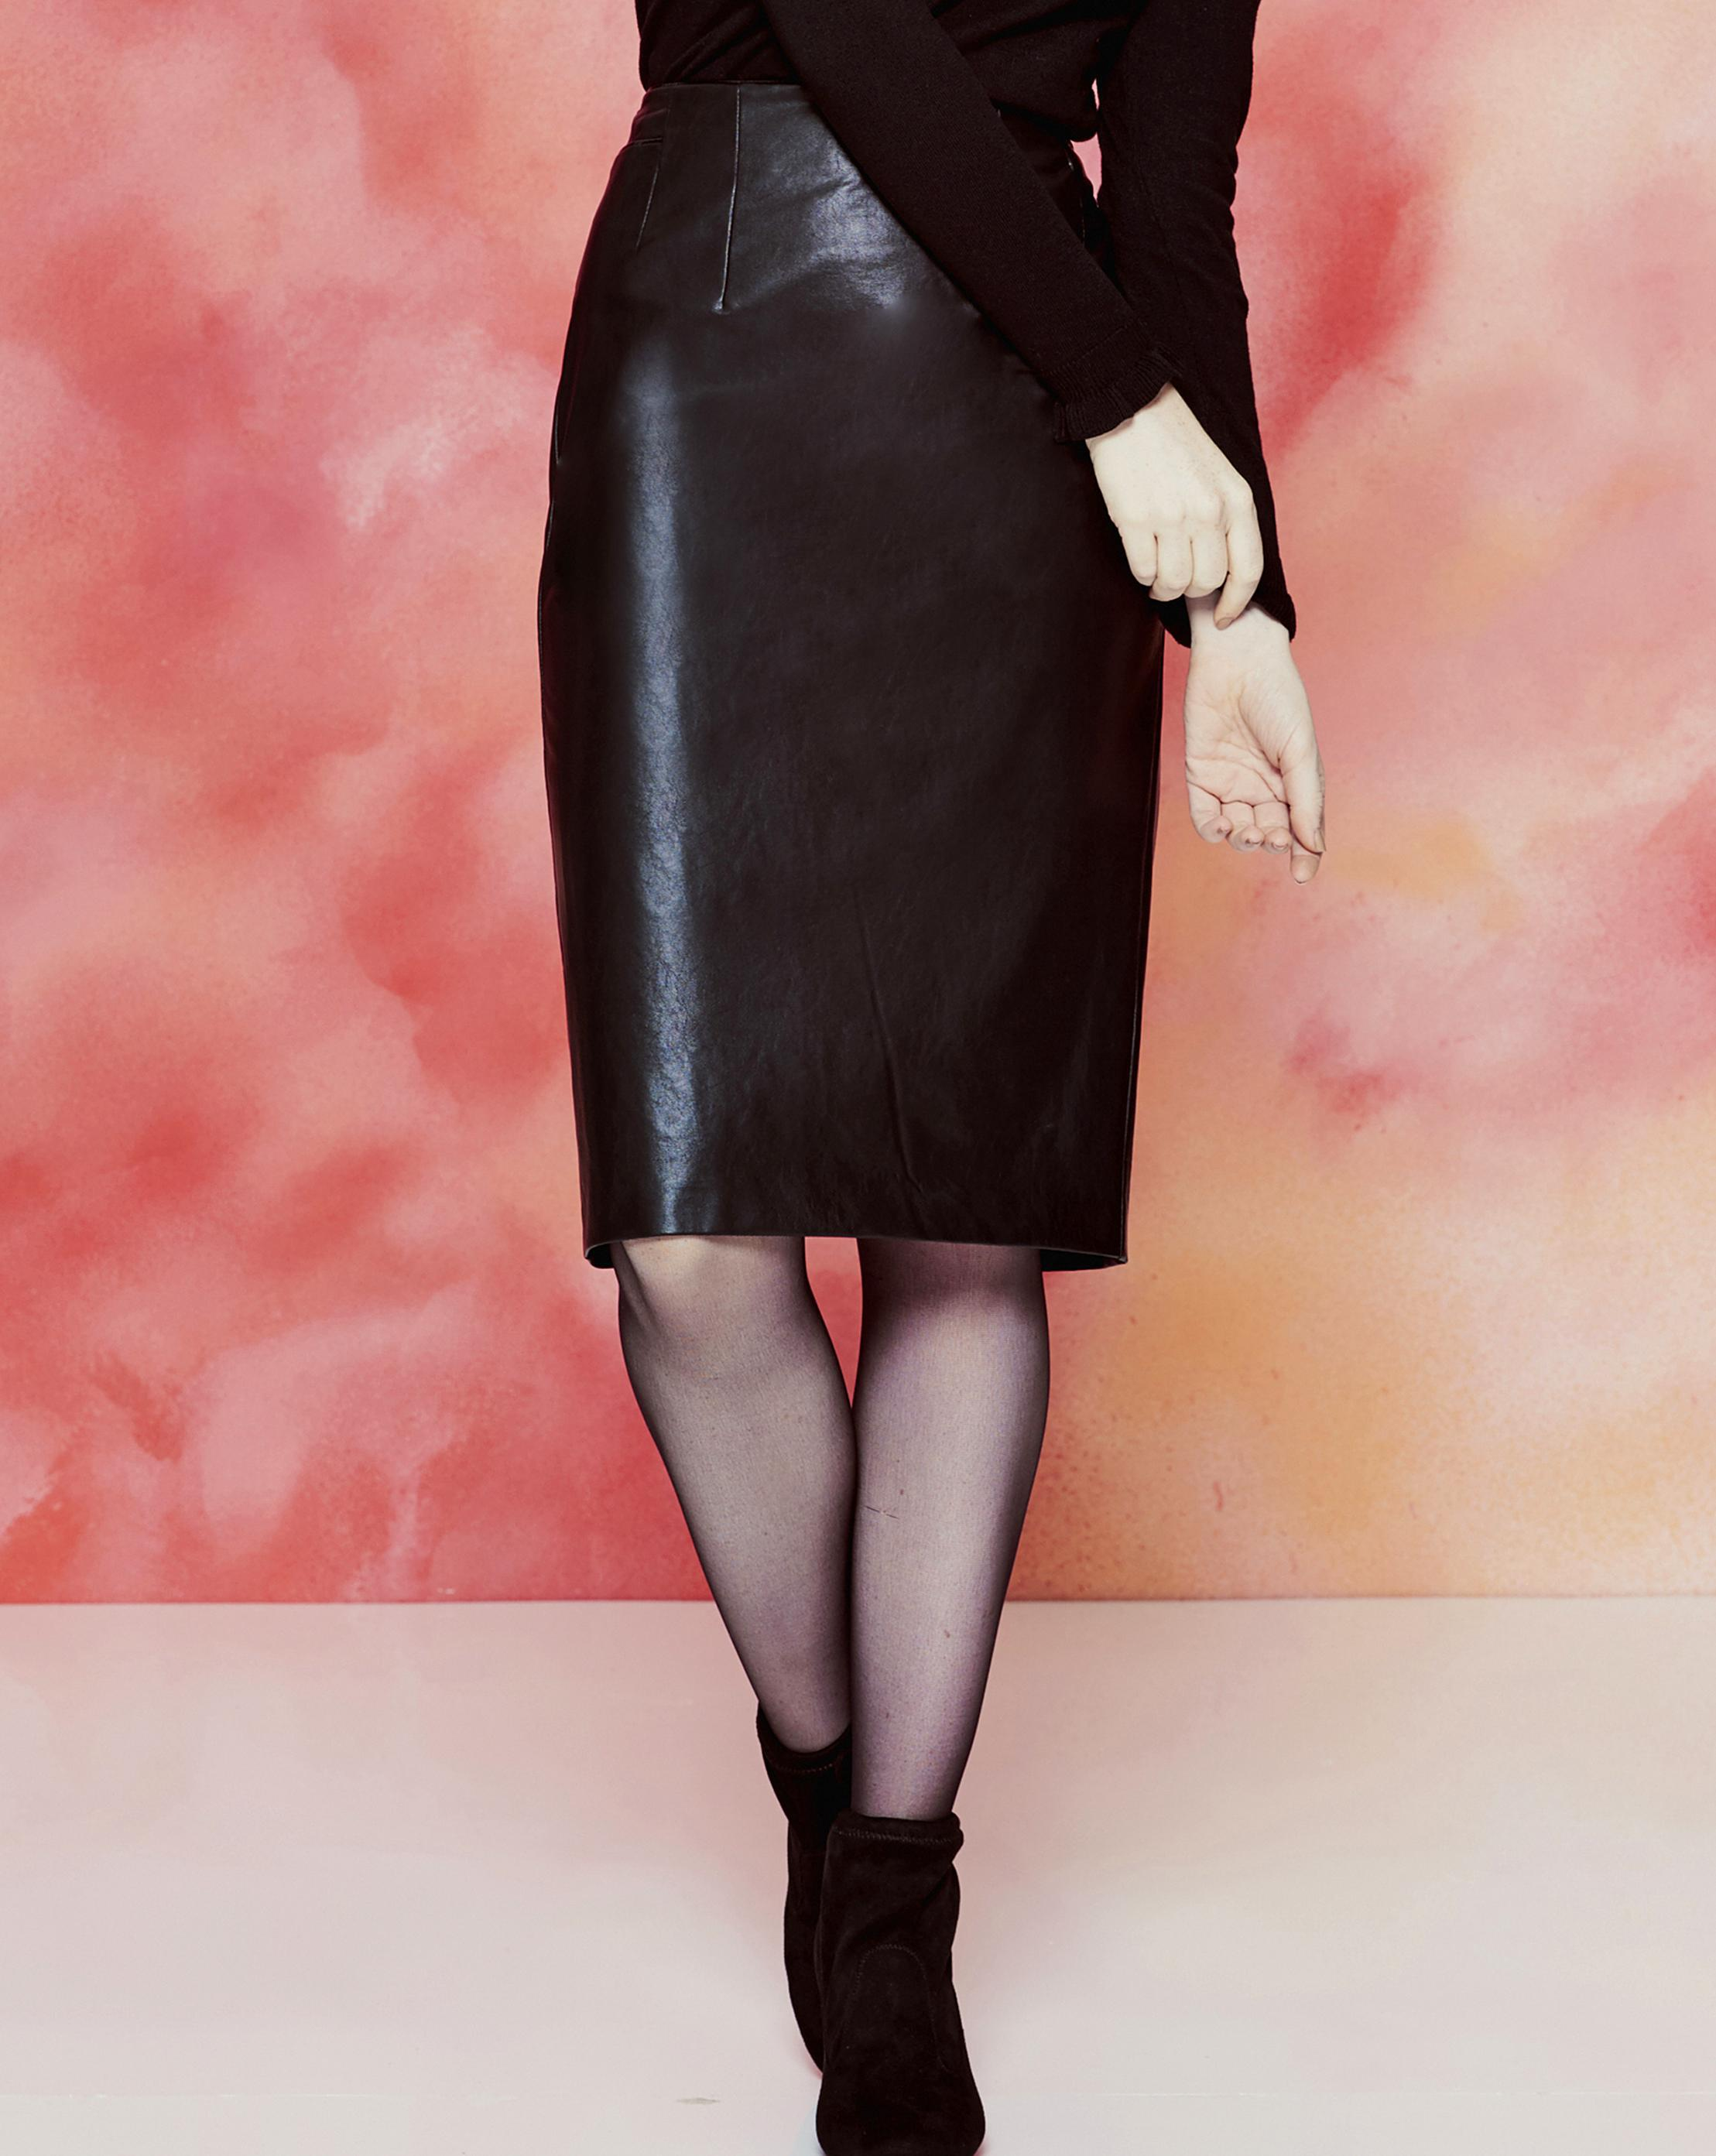 be47a8d5ead7 Gallery. Previously sold at: Simply Be · Women's Leather Skirts Women's Pencil  Skirts Women's Black ...